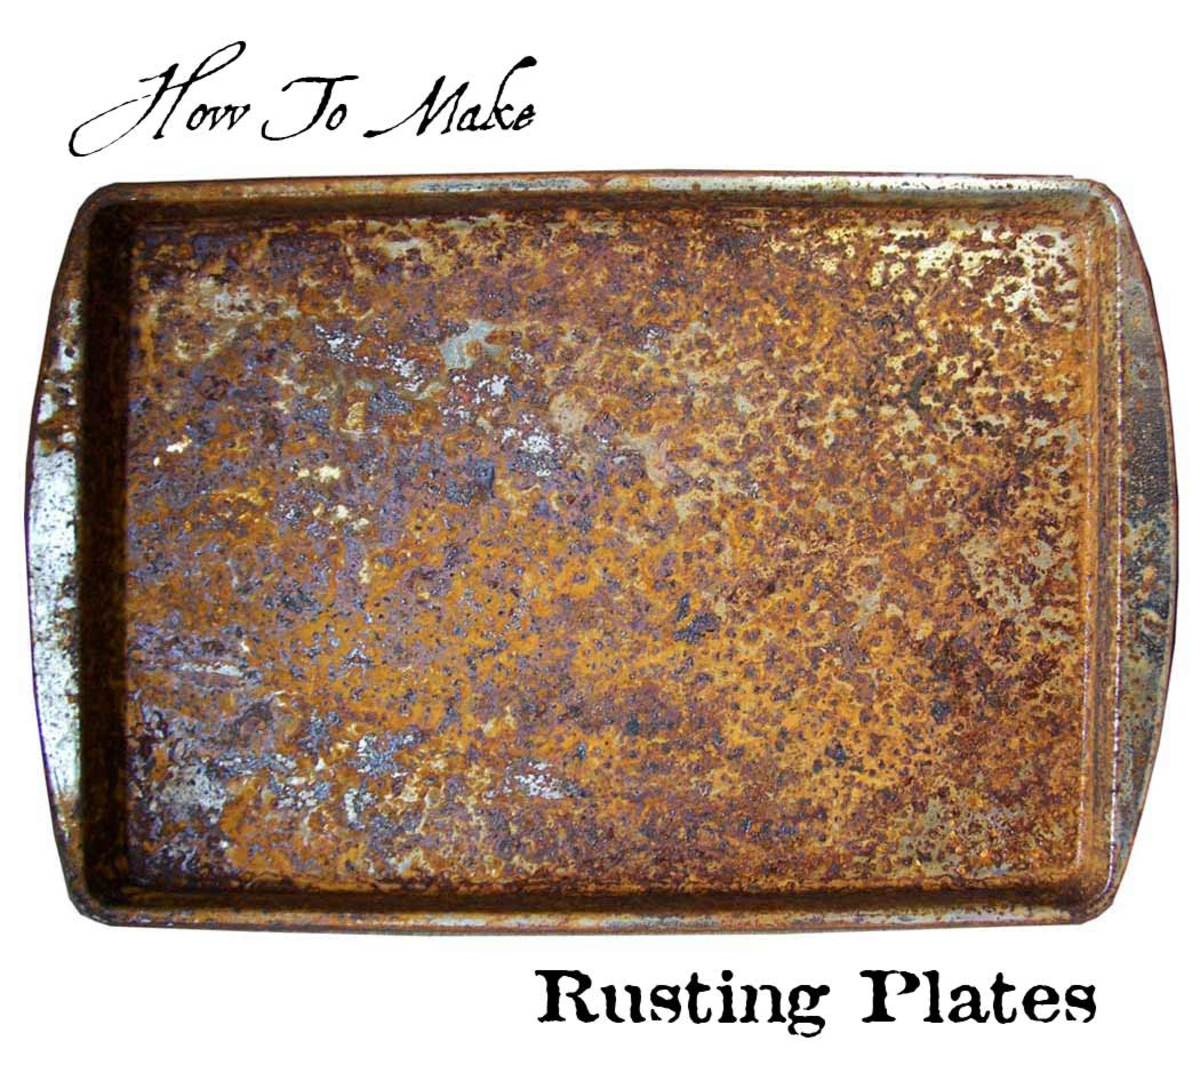 How To Make Rusting Plates